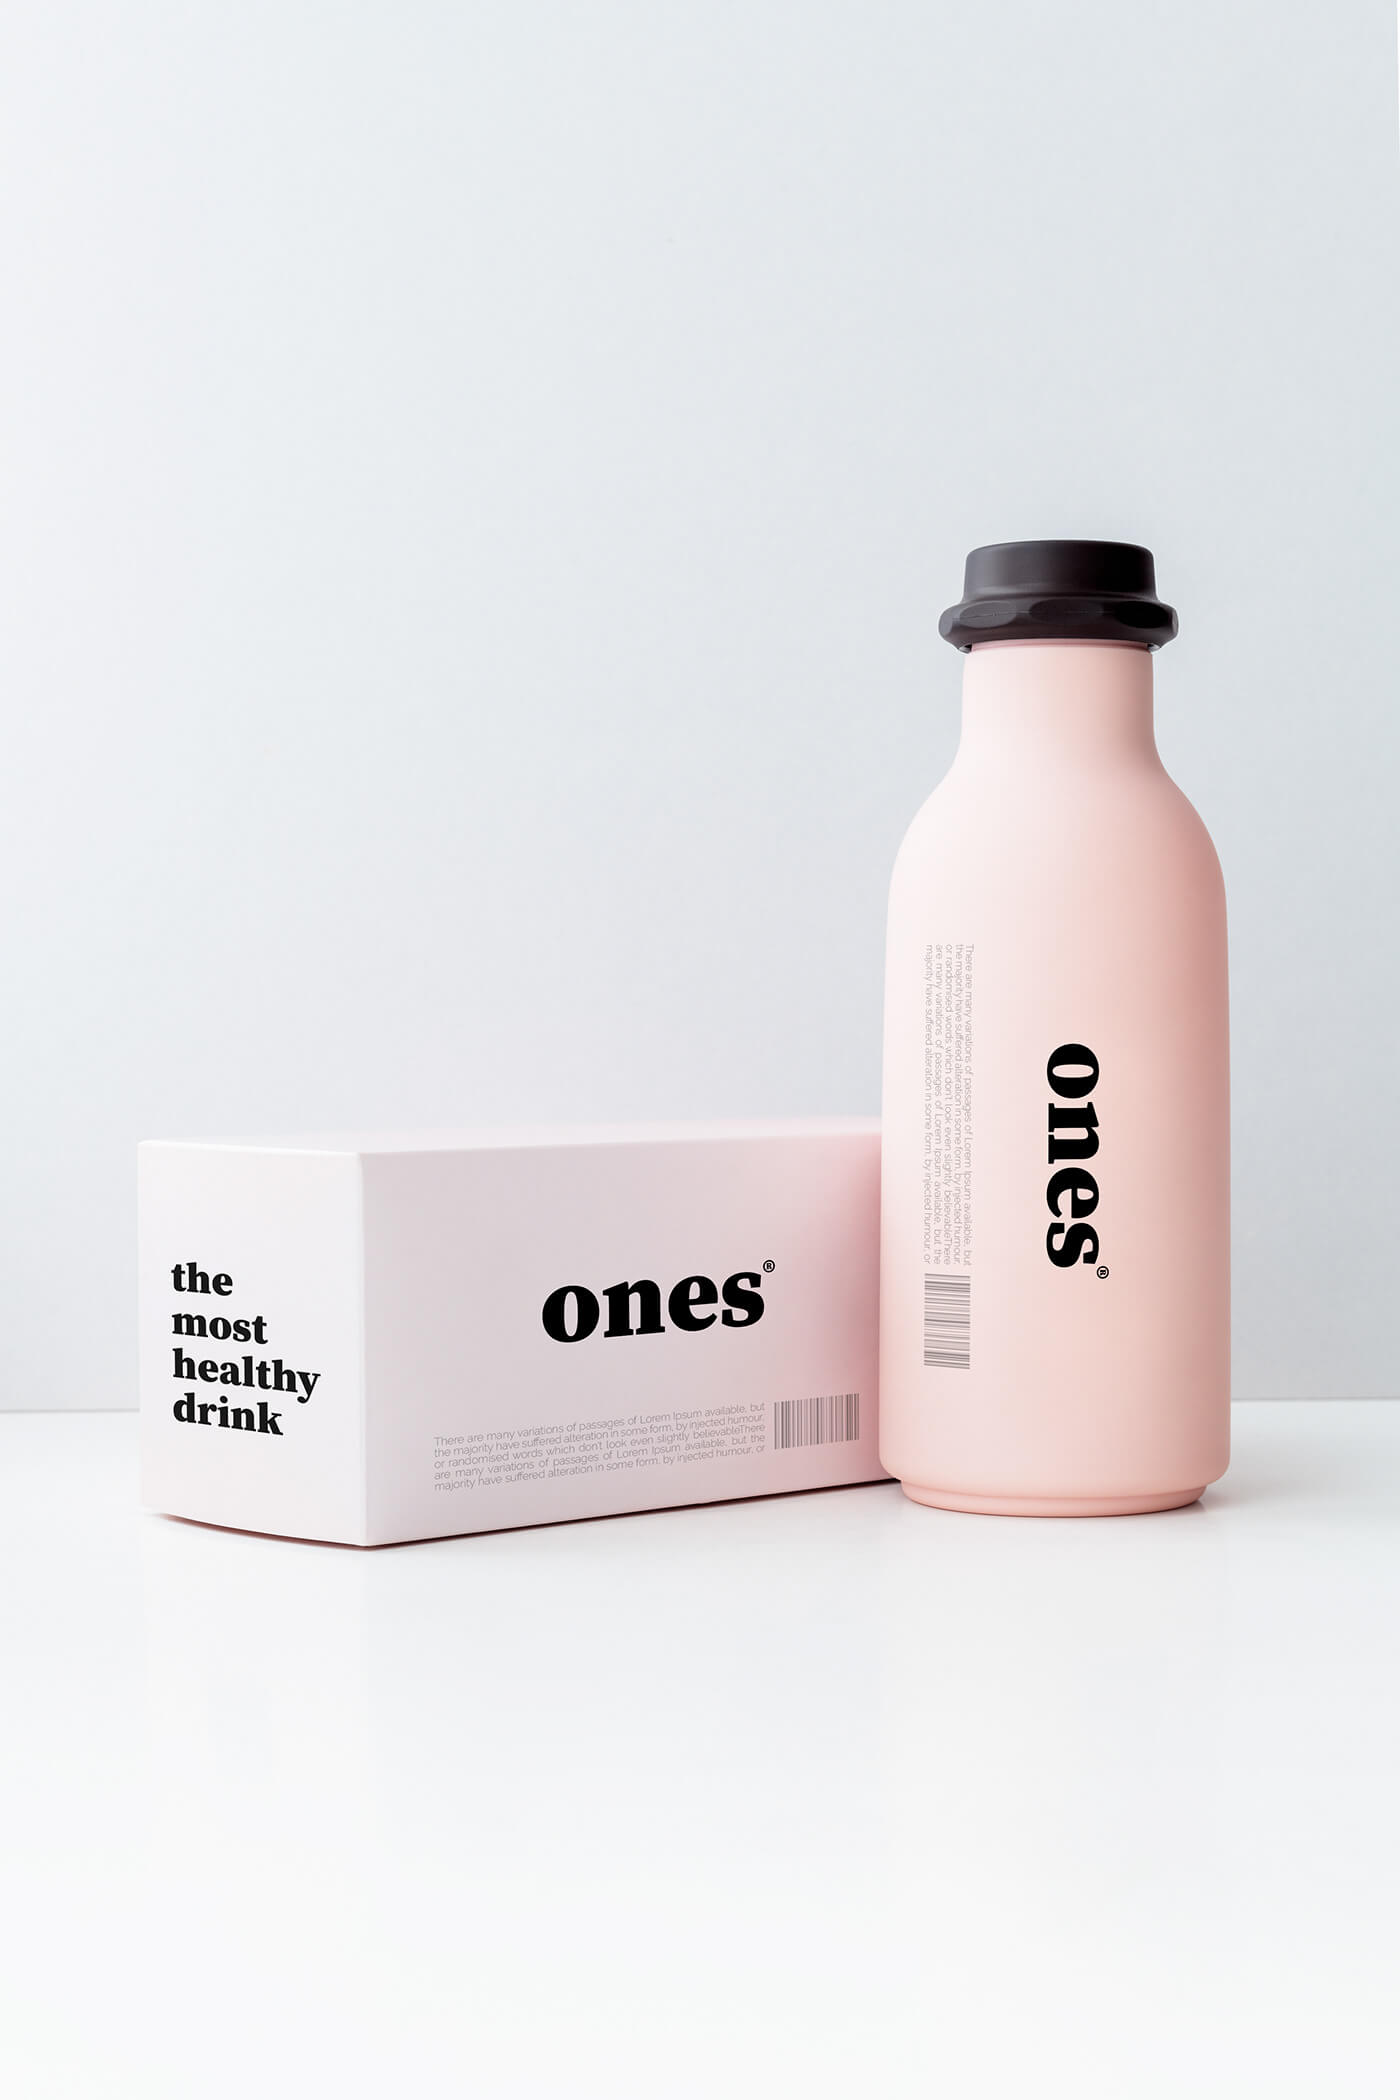 Ones – The most healthy drink